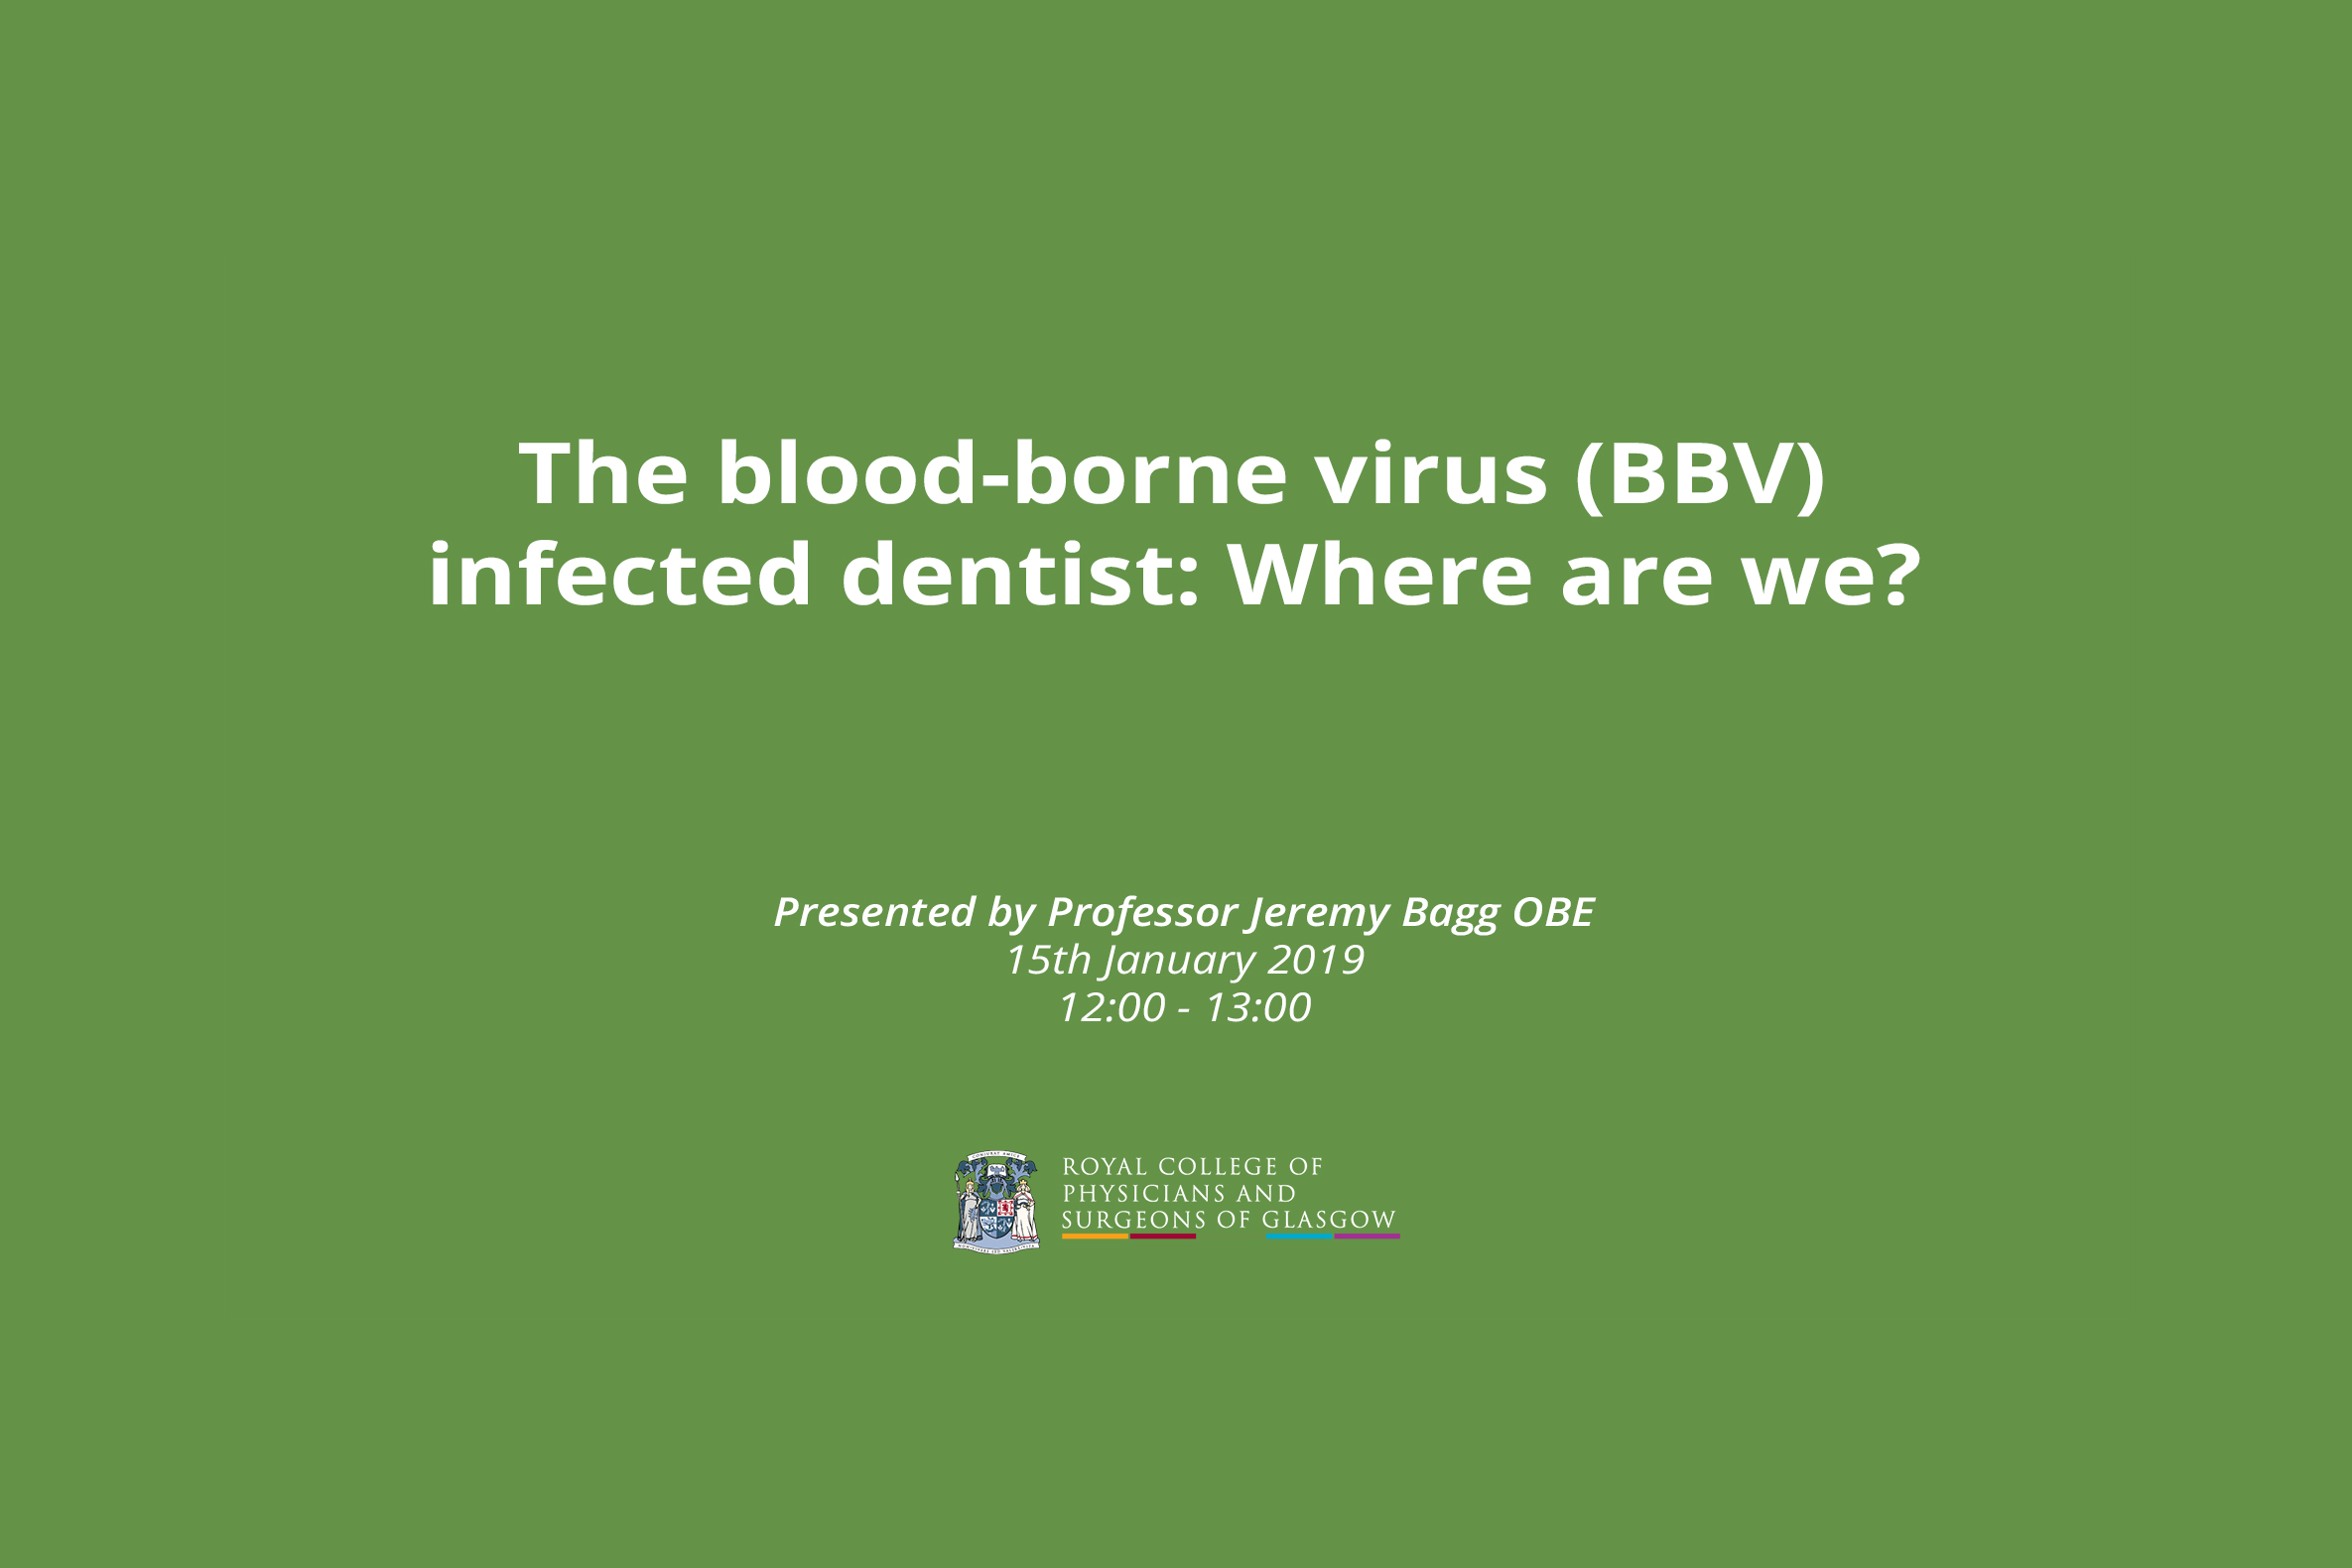 The blood-borne virus (BBV) infected dentist: Where are we?